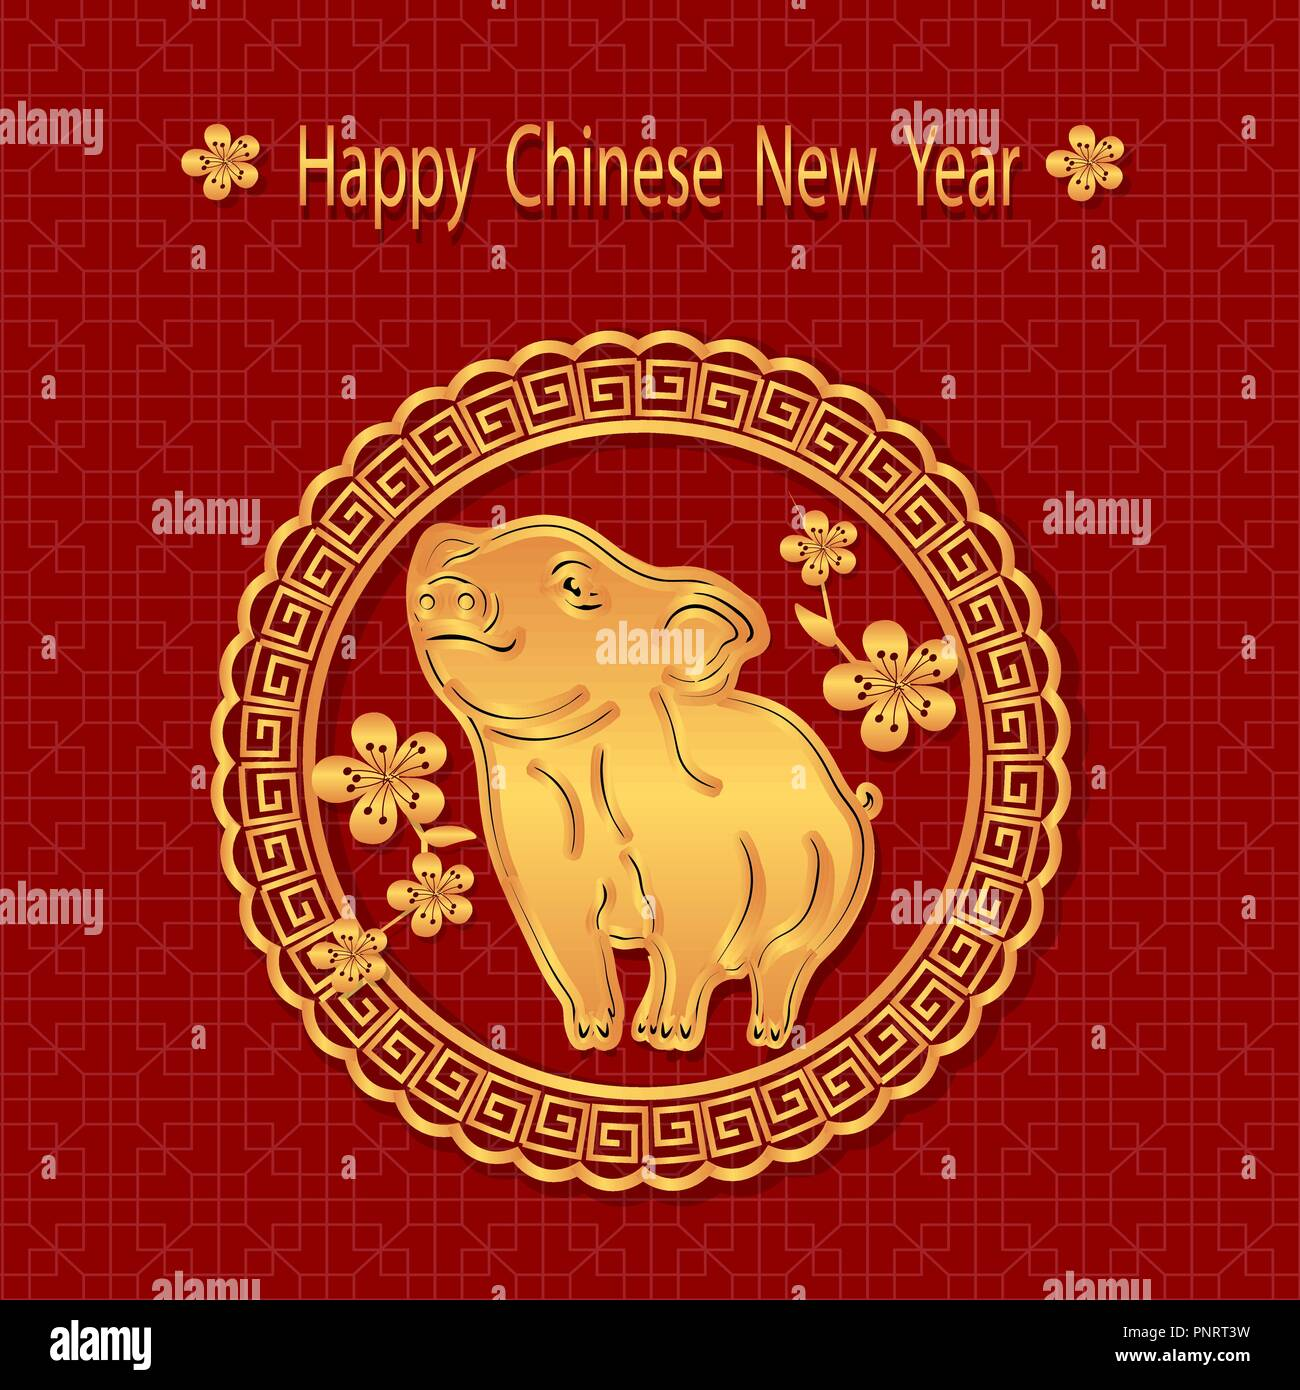 2019 Sign Of The Zodiac Congratulatory Inscription With Chinese New